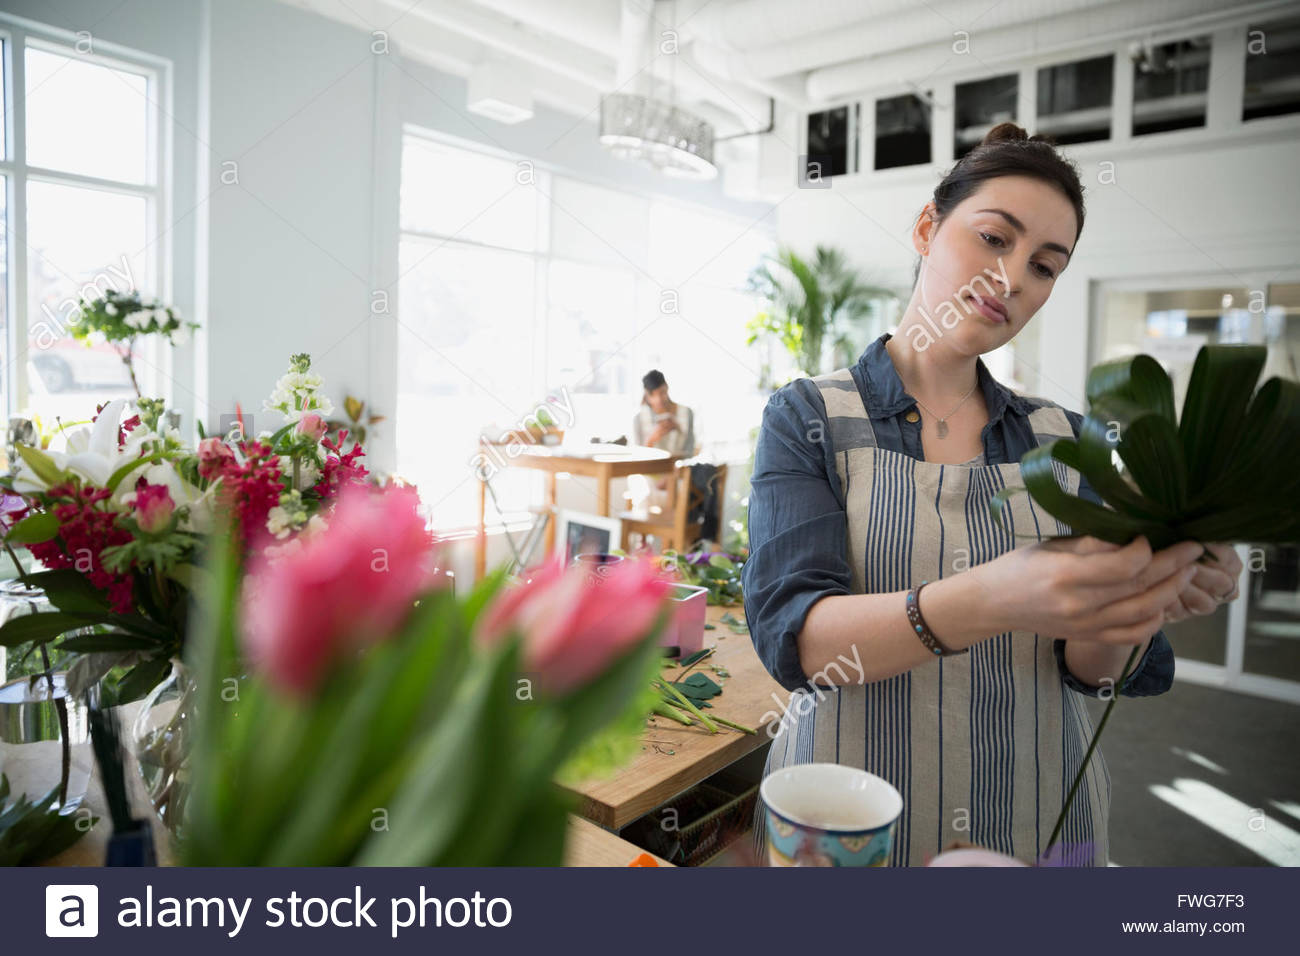 Florist arranging bouquet in flower shop - Stock Image